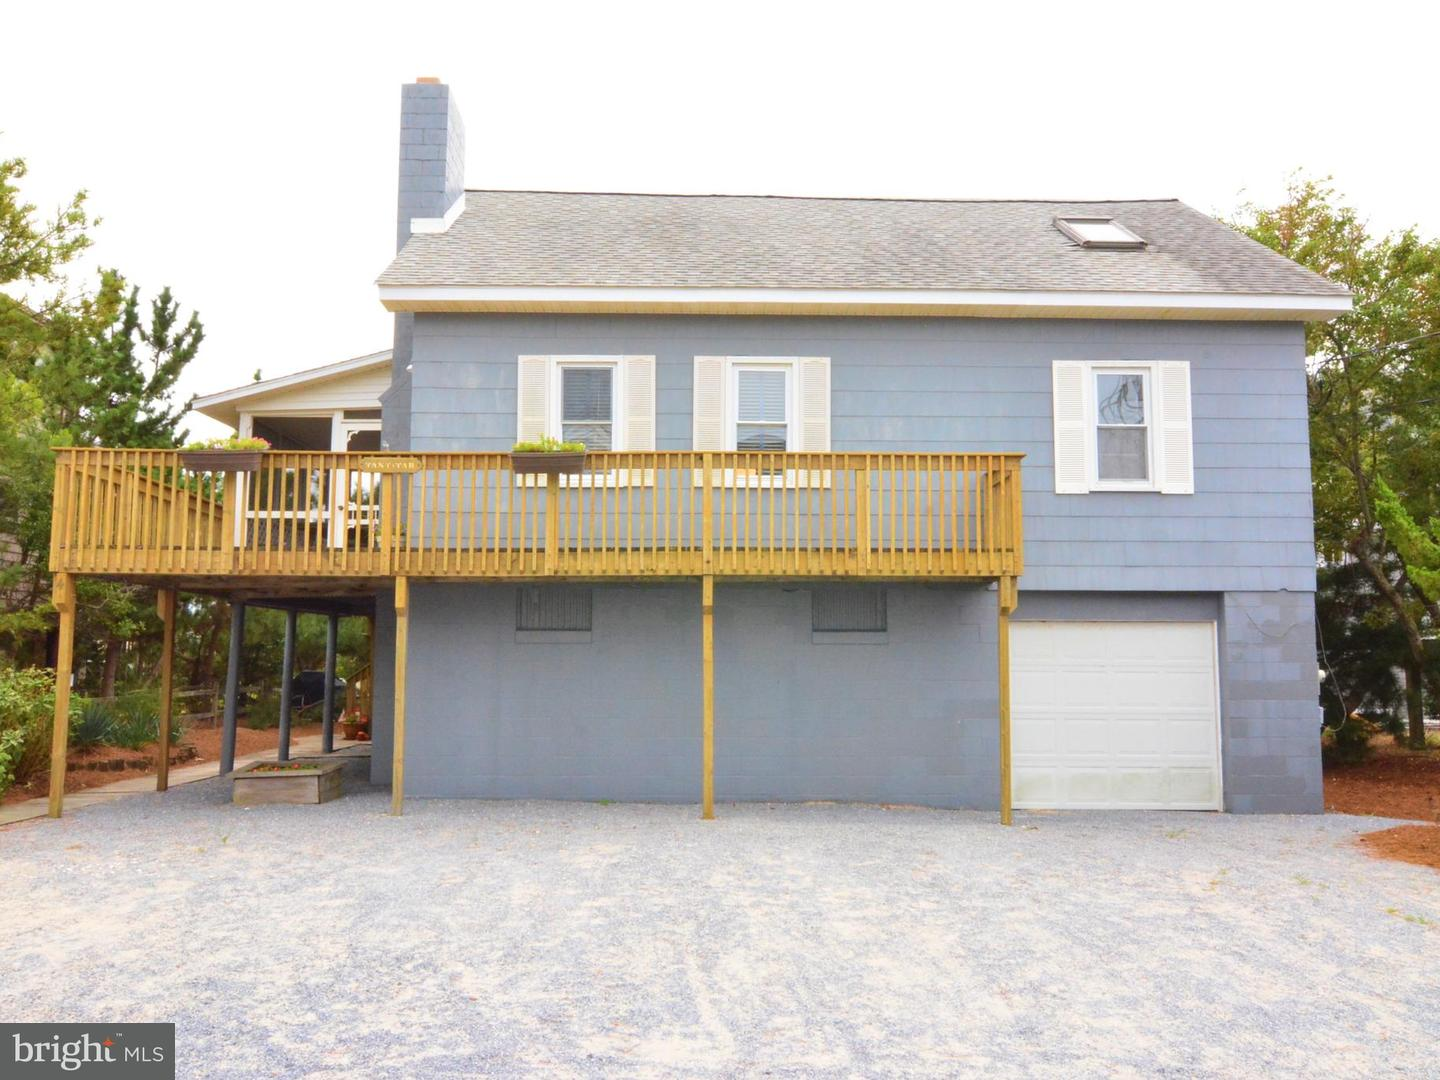 1002299338-300501703146-2018-08-30-10-08-41 4 S 4th St | South Bethany, DE Real Estate For Sale | MLS# 1002299338  - 1st Choice Properties